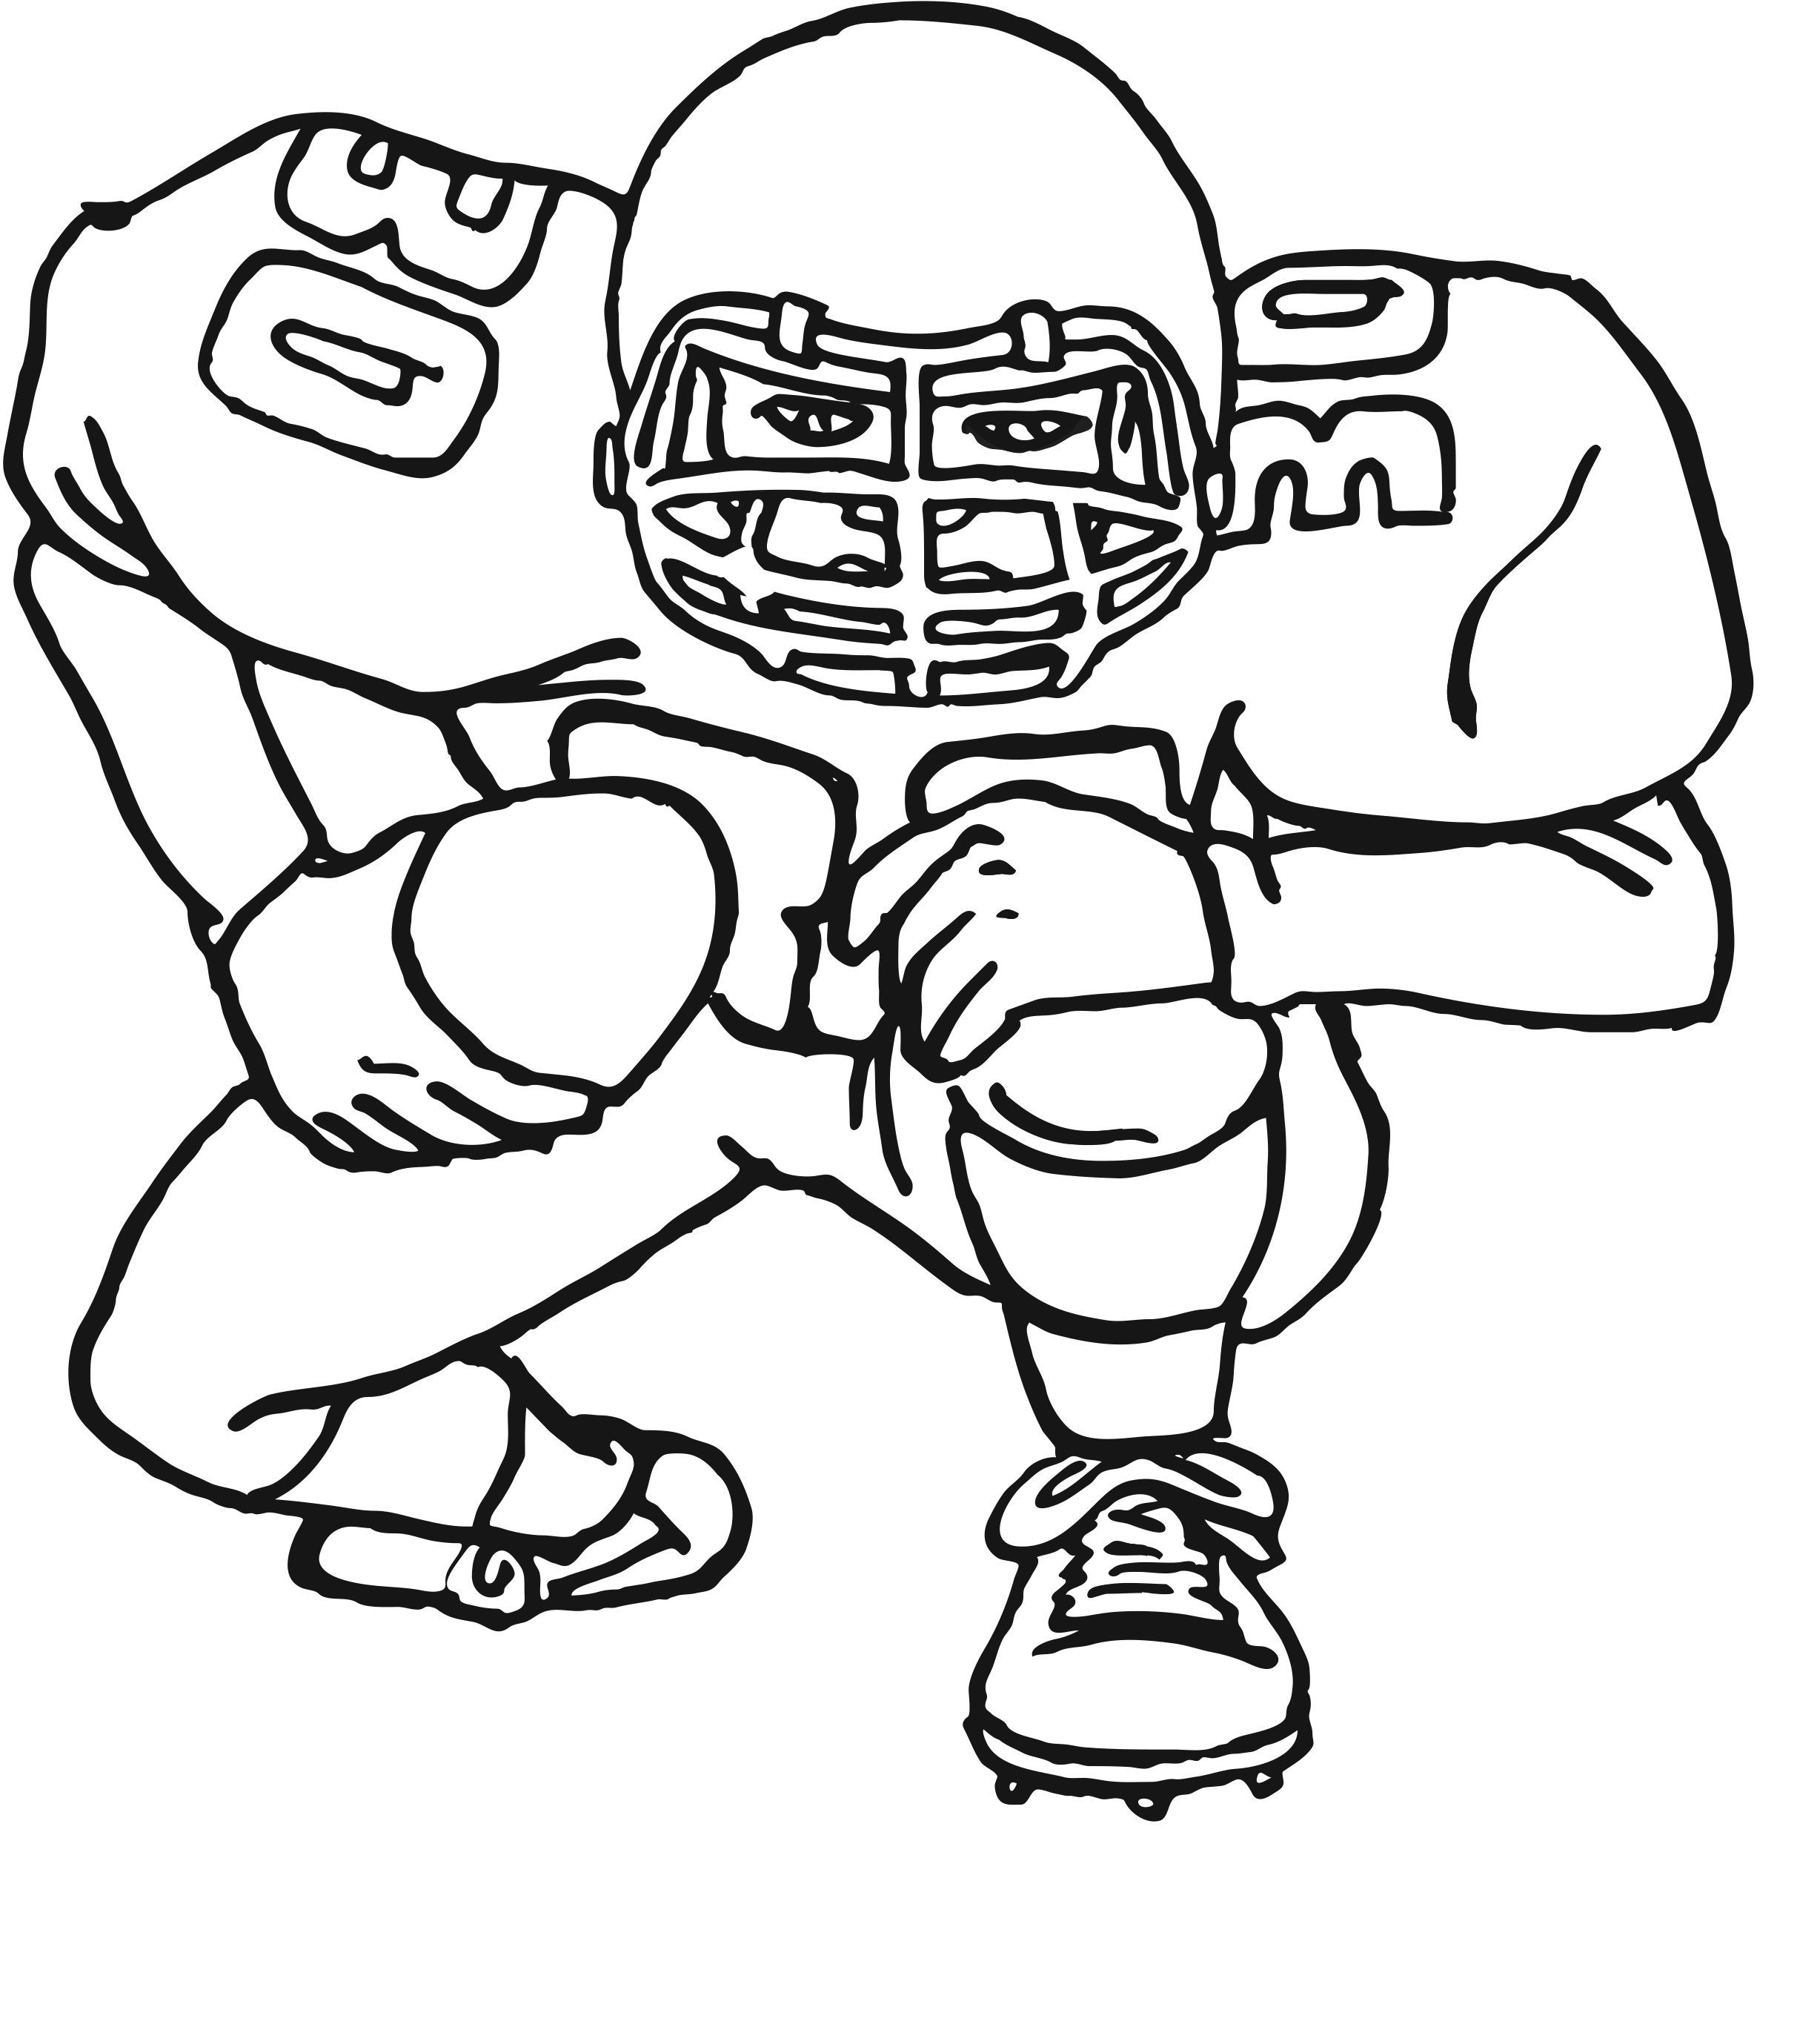 Cleveland Show Coloring Pages At Getcolorings